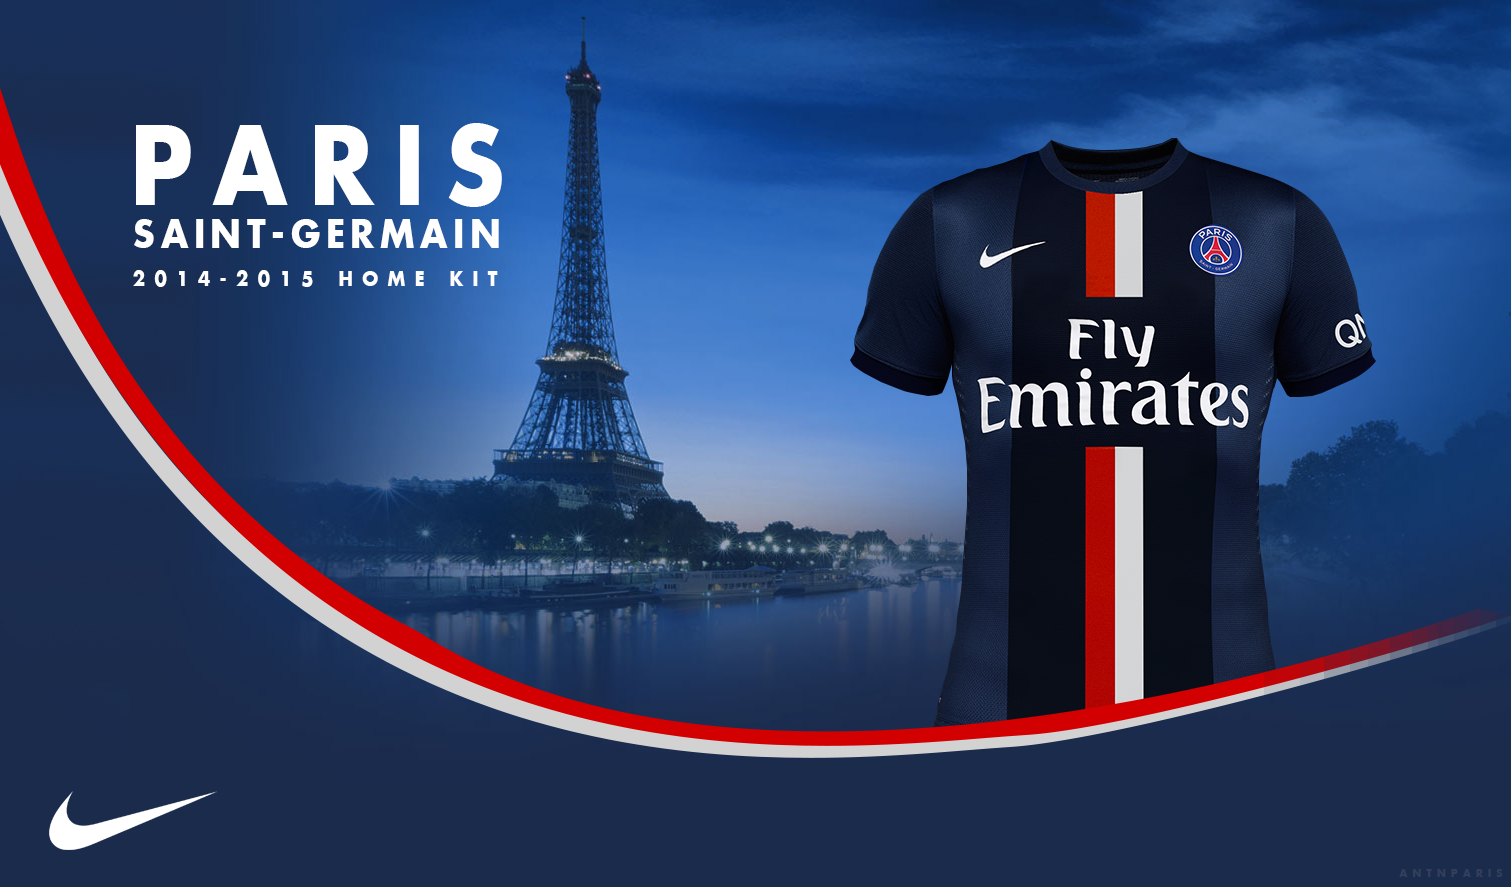 AD PSG New Home Kit 2015 By Evert0z On DeviantArt